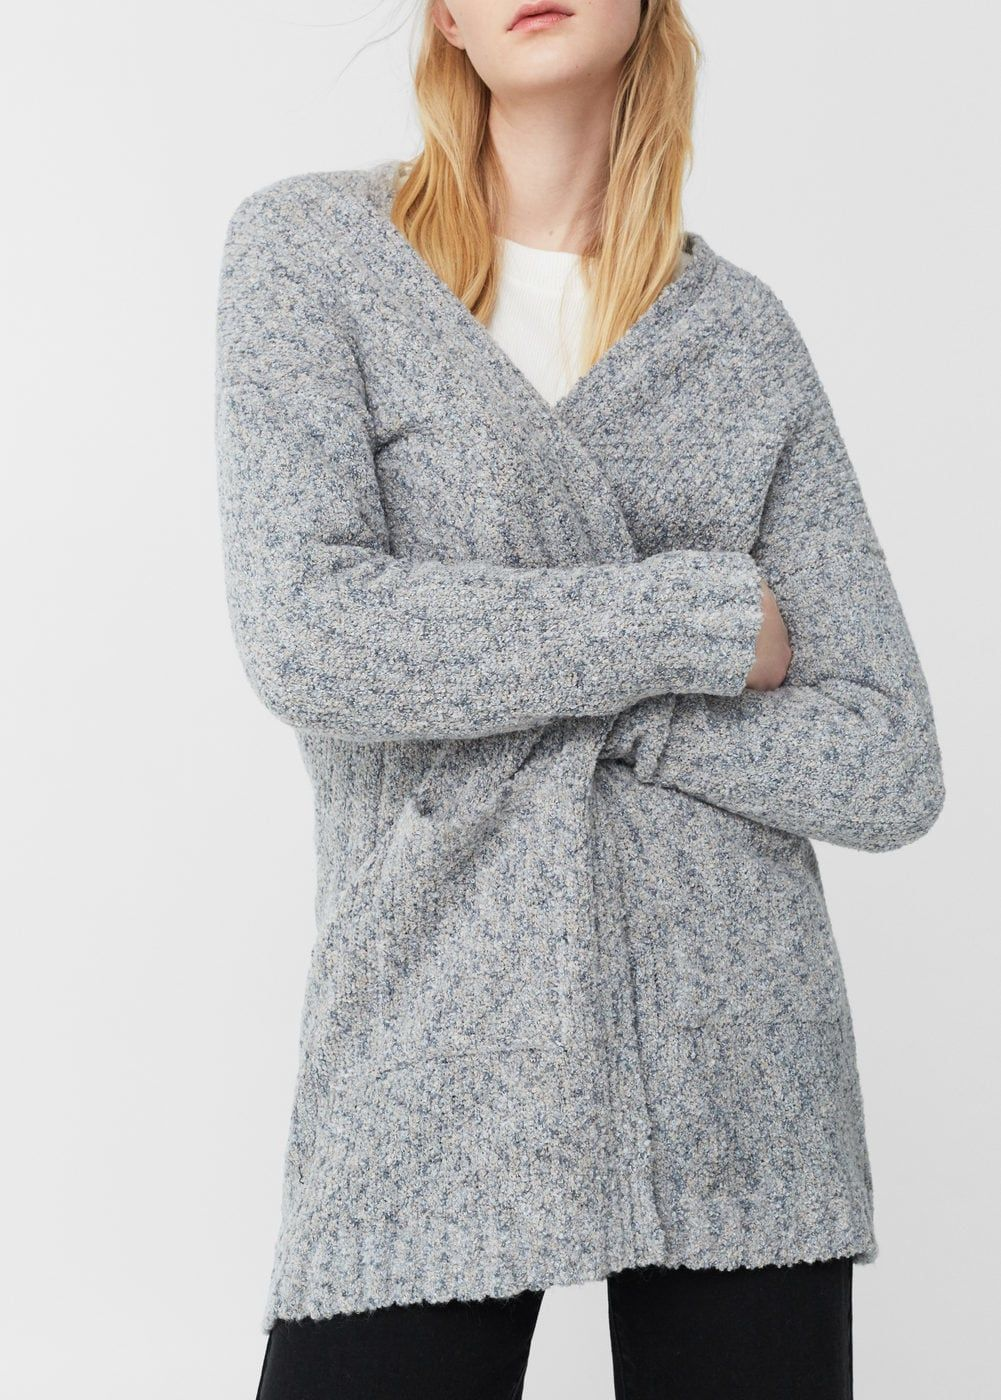 Draped detail dress | Chunky knit cardigan